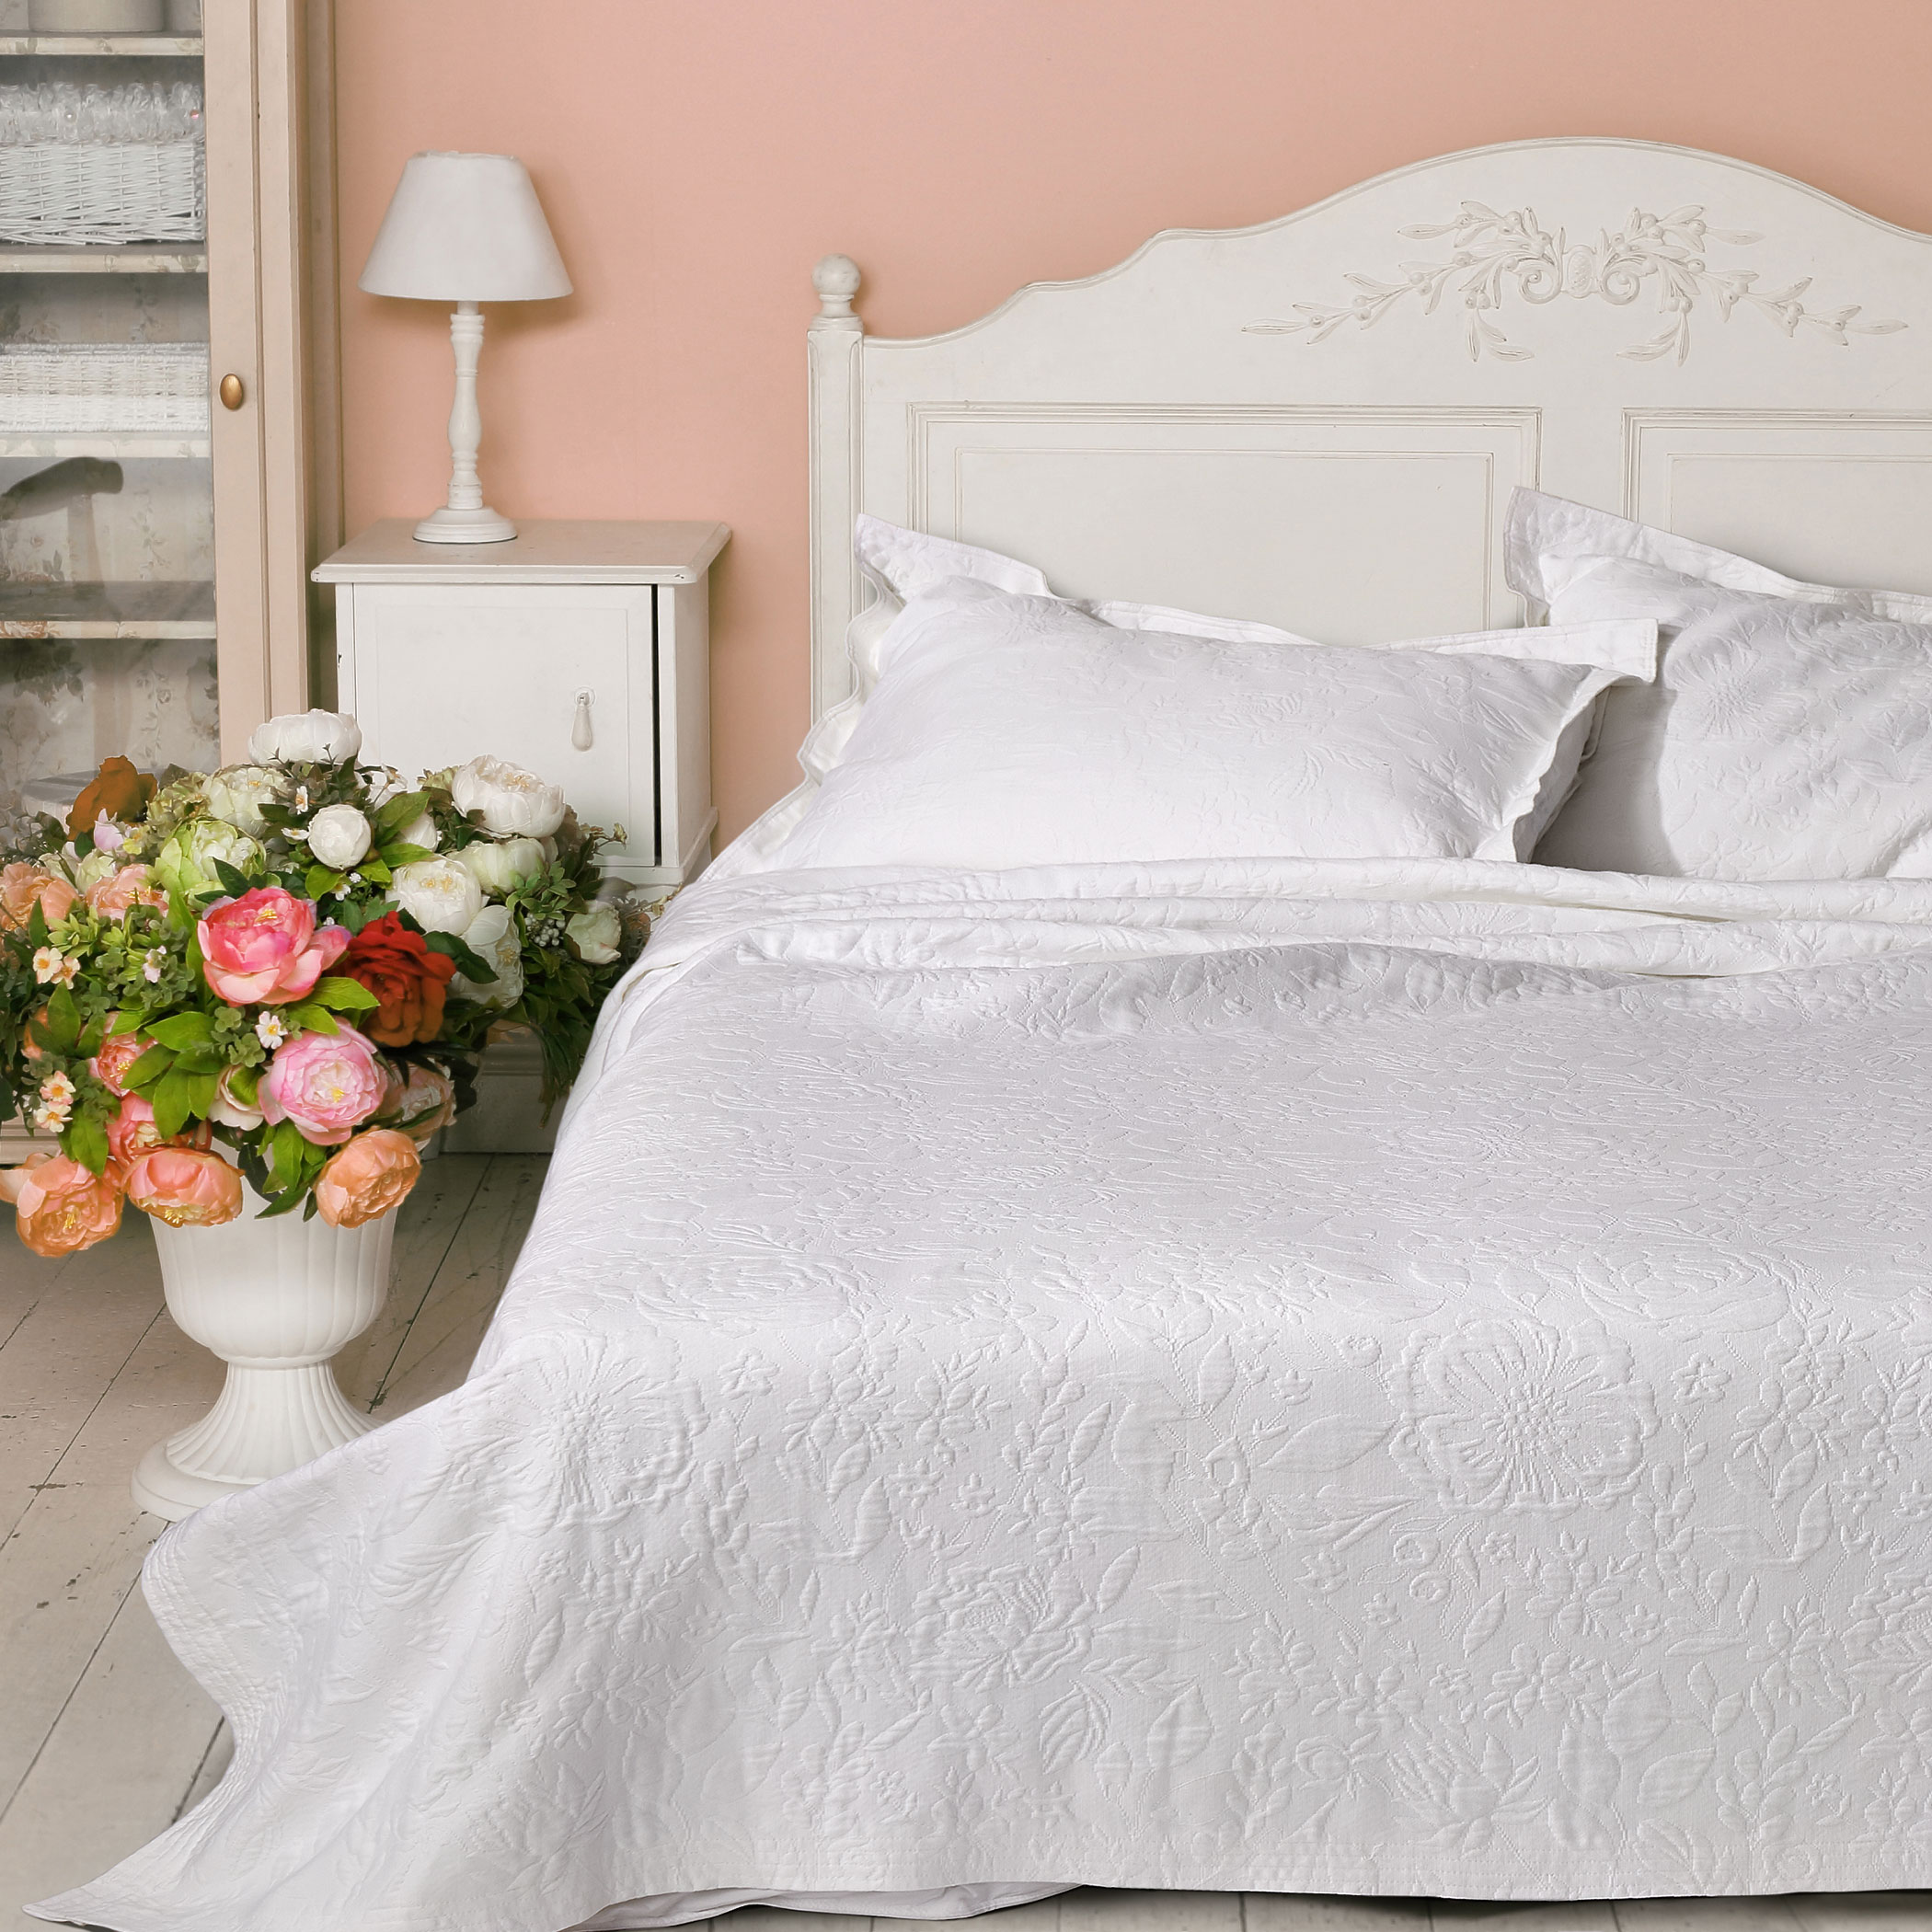 Coverlet-Meadowbrook-White-Lifestyle-1.jpg